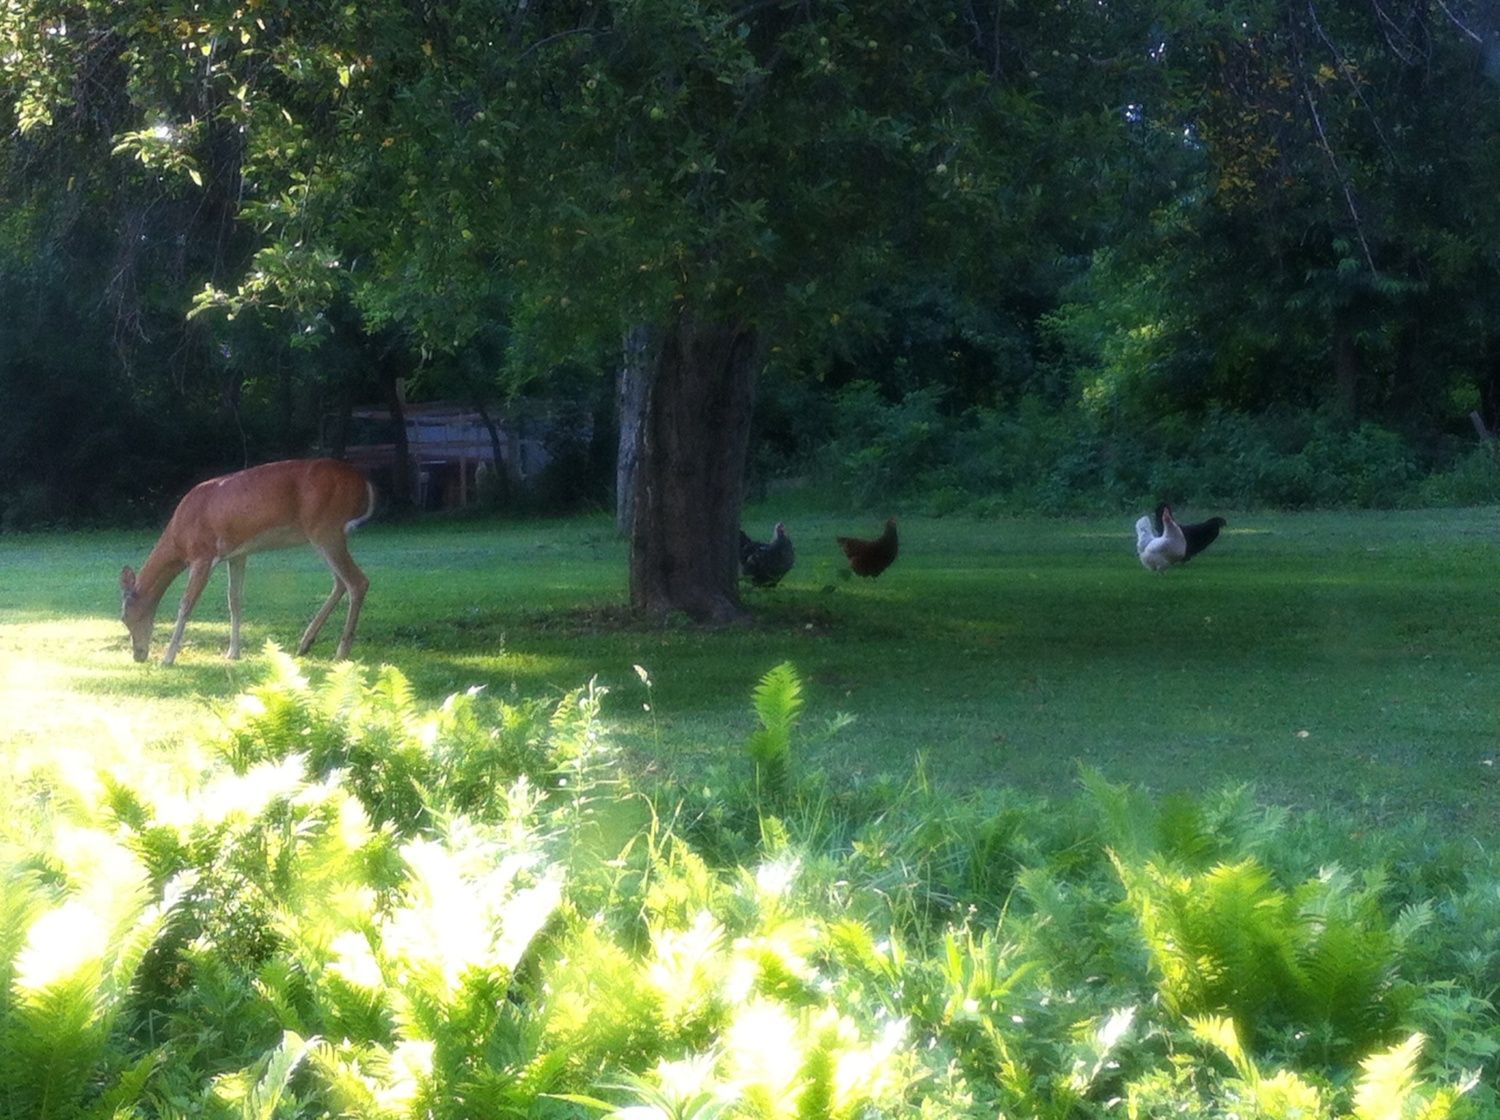 I just thought I would share this picture covering all the potential food in my back yard all concentrated into one place. A large deer standing under an apple tree with my chickens right next to it all. Who has a recipe that includes eggs, venison, chicken and apples?